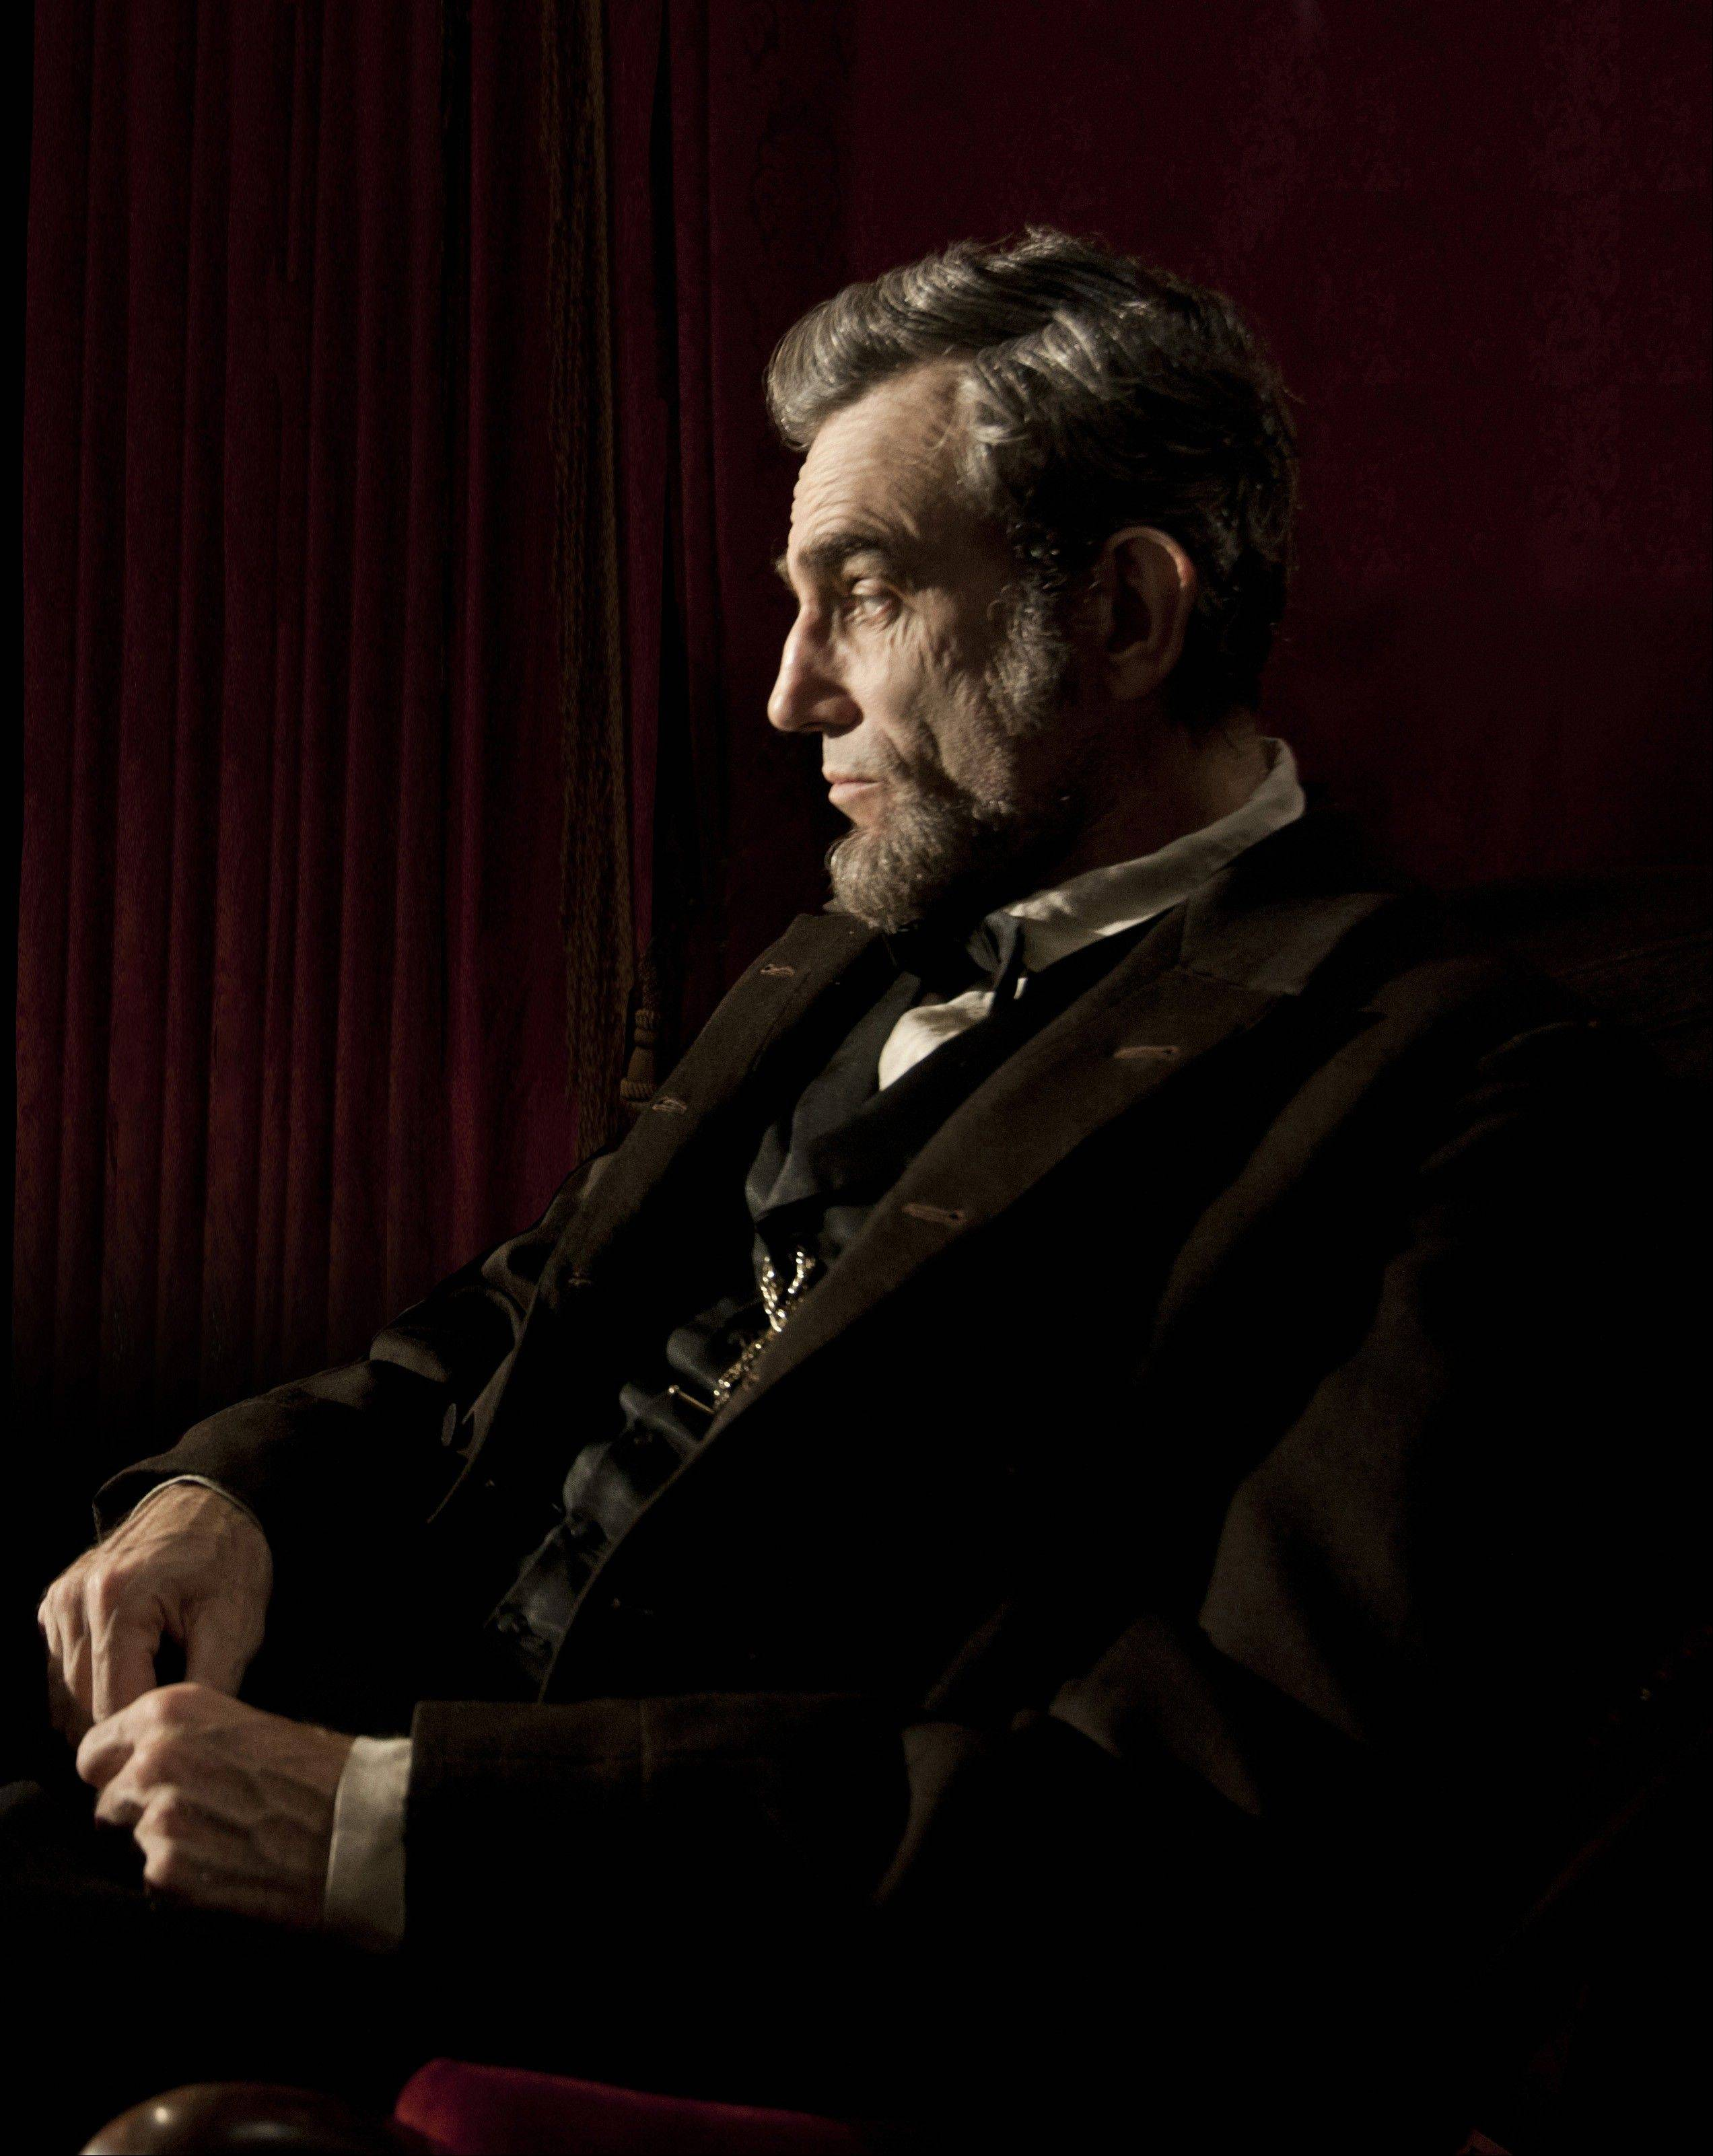 This publicity image shows Daniel Day-Lewis portraying Abraham Lincoln in the film �Lincoln.�